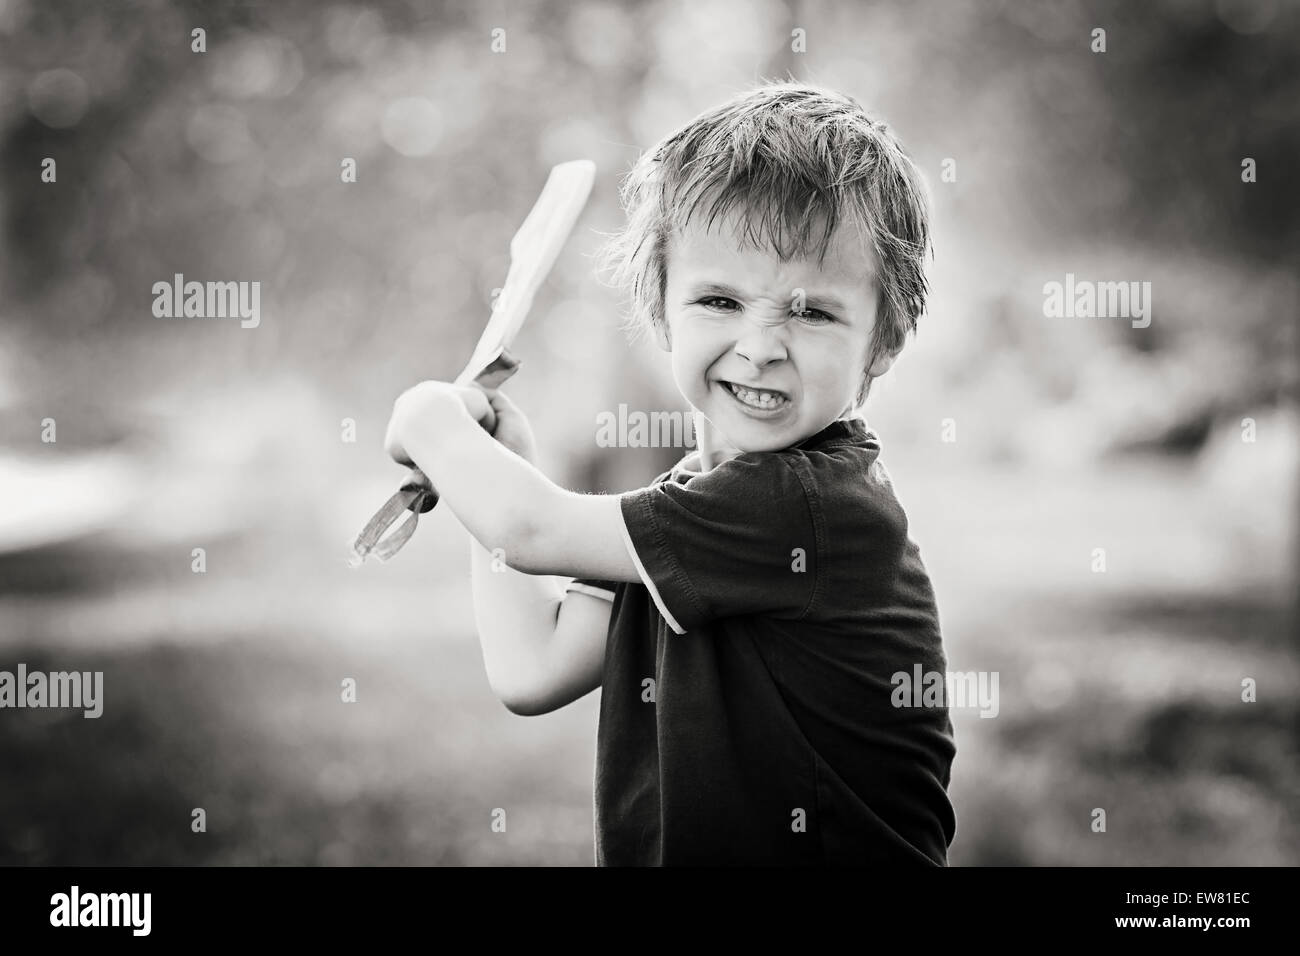 Angry little boy, holding sword, glaring with a mad face at the camera, outdoors in the park, monochrome conversion Stock Photo